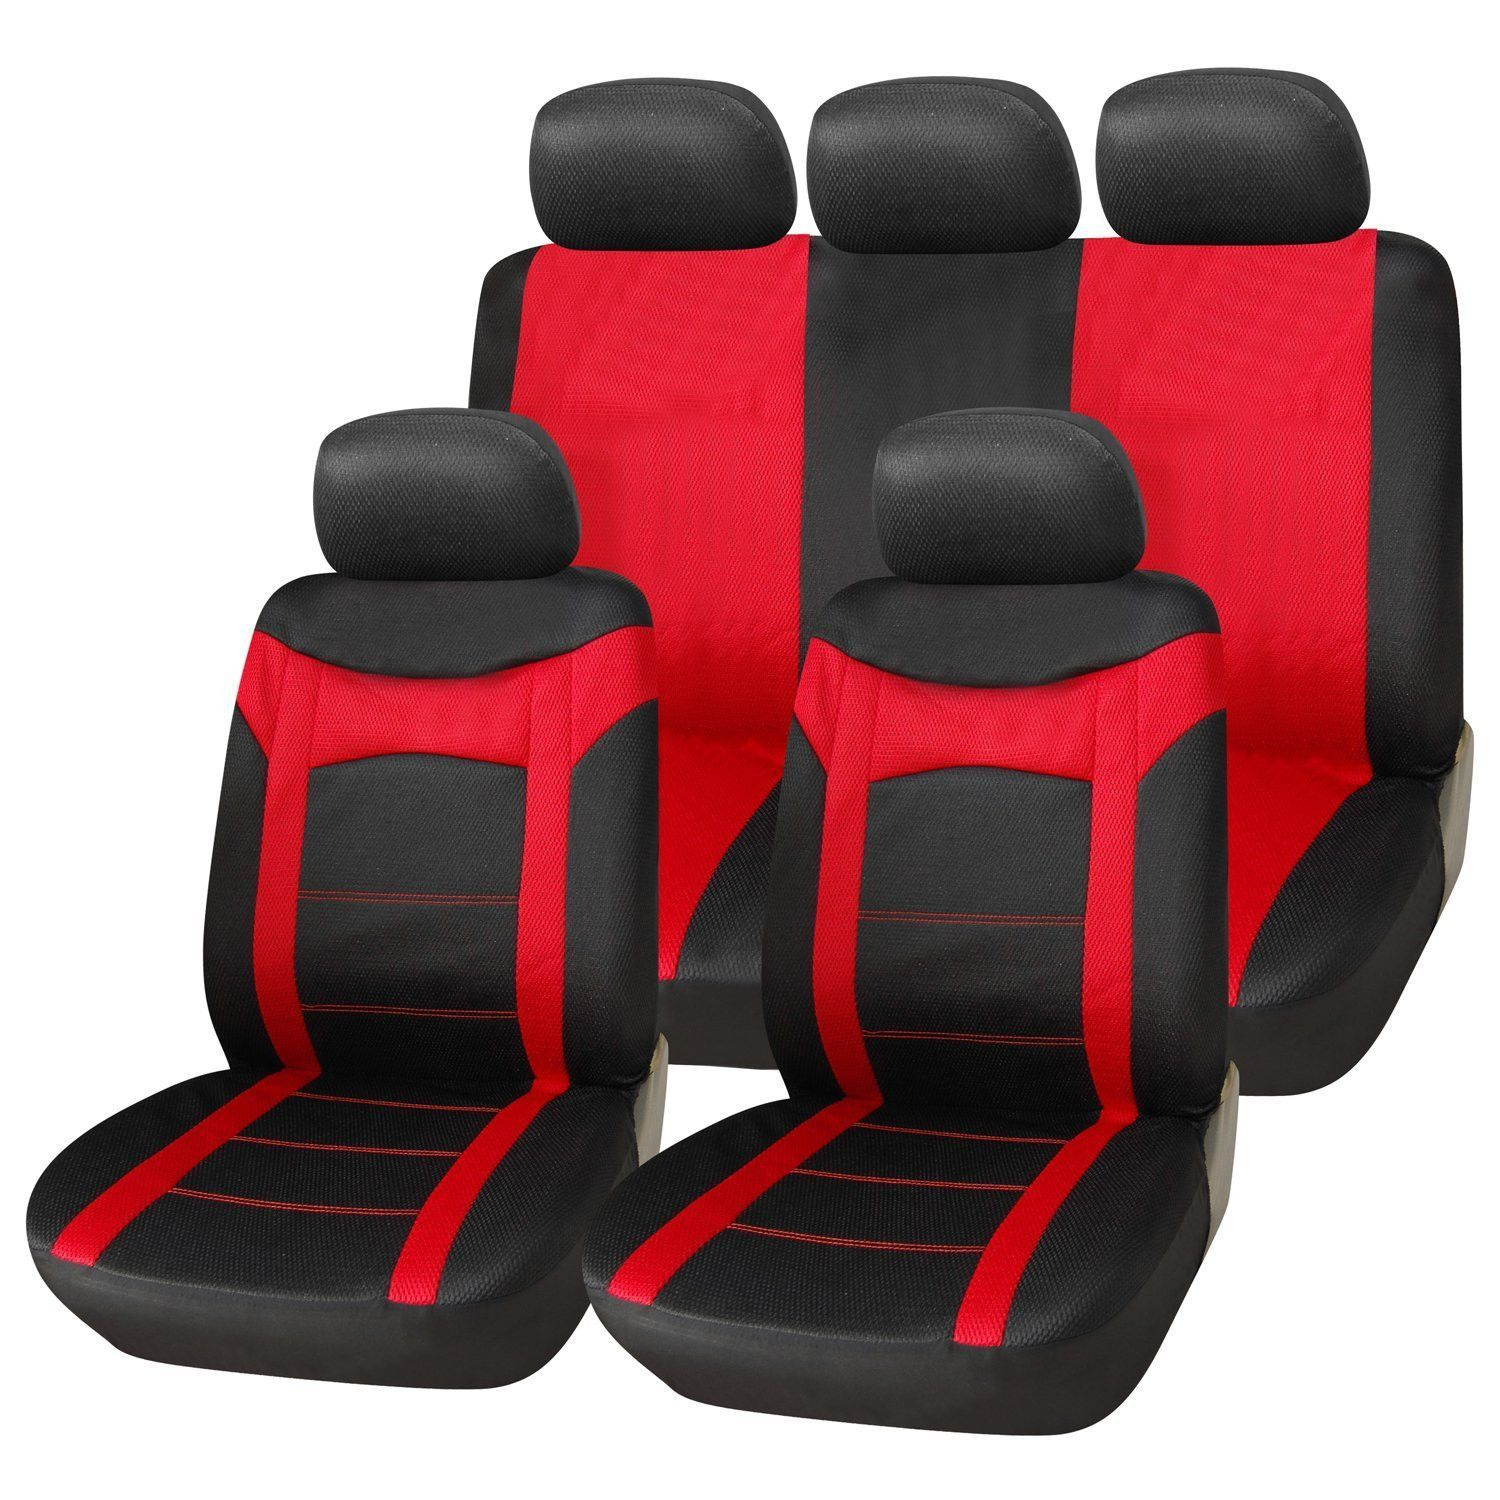 Swell Furnistar 9 Piece Car Vehicle Protective Seat Covers Black Pabps2019 Chair Design Images Pabps2019Com